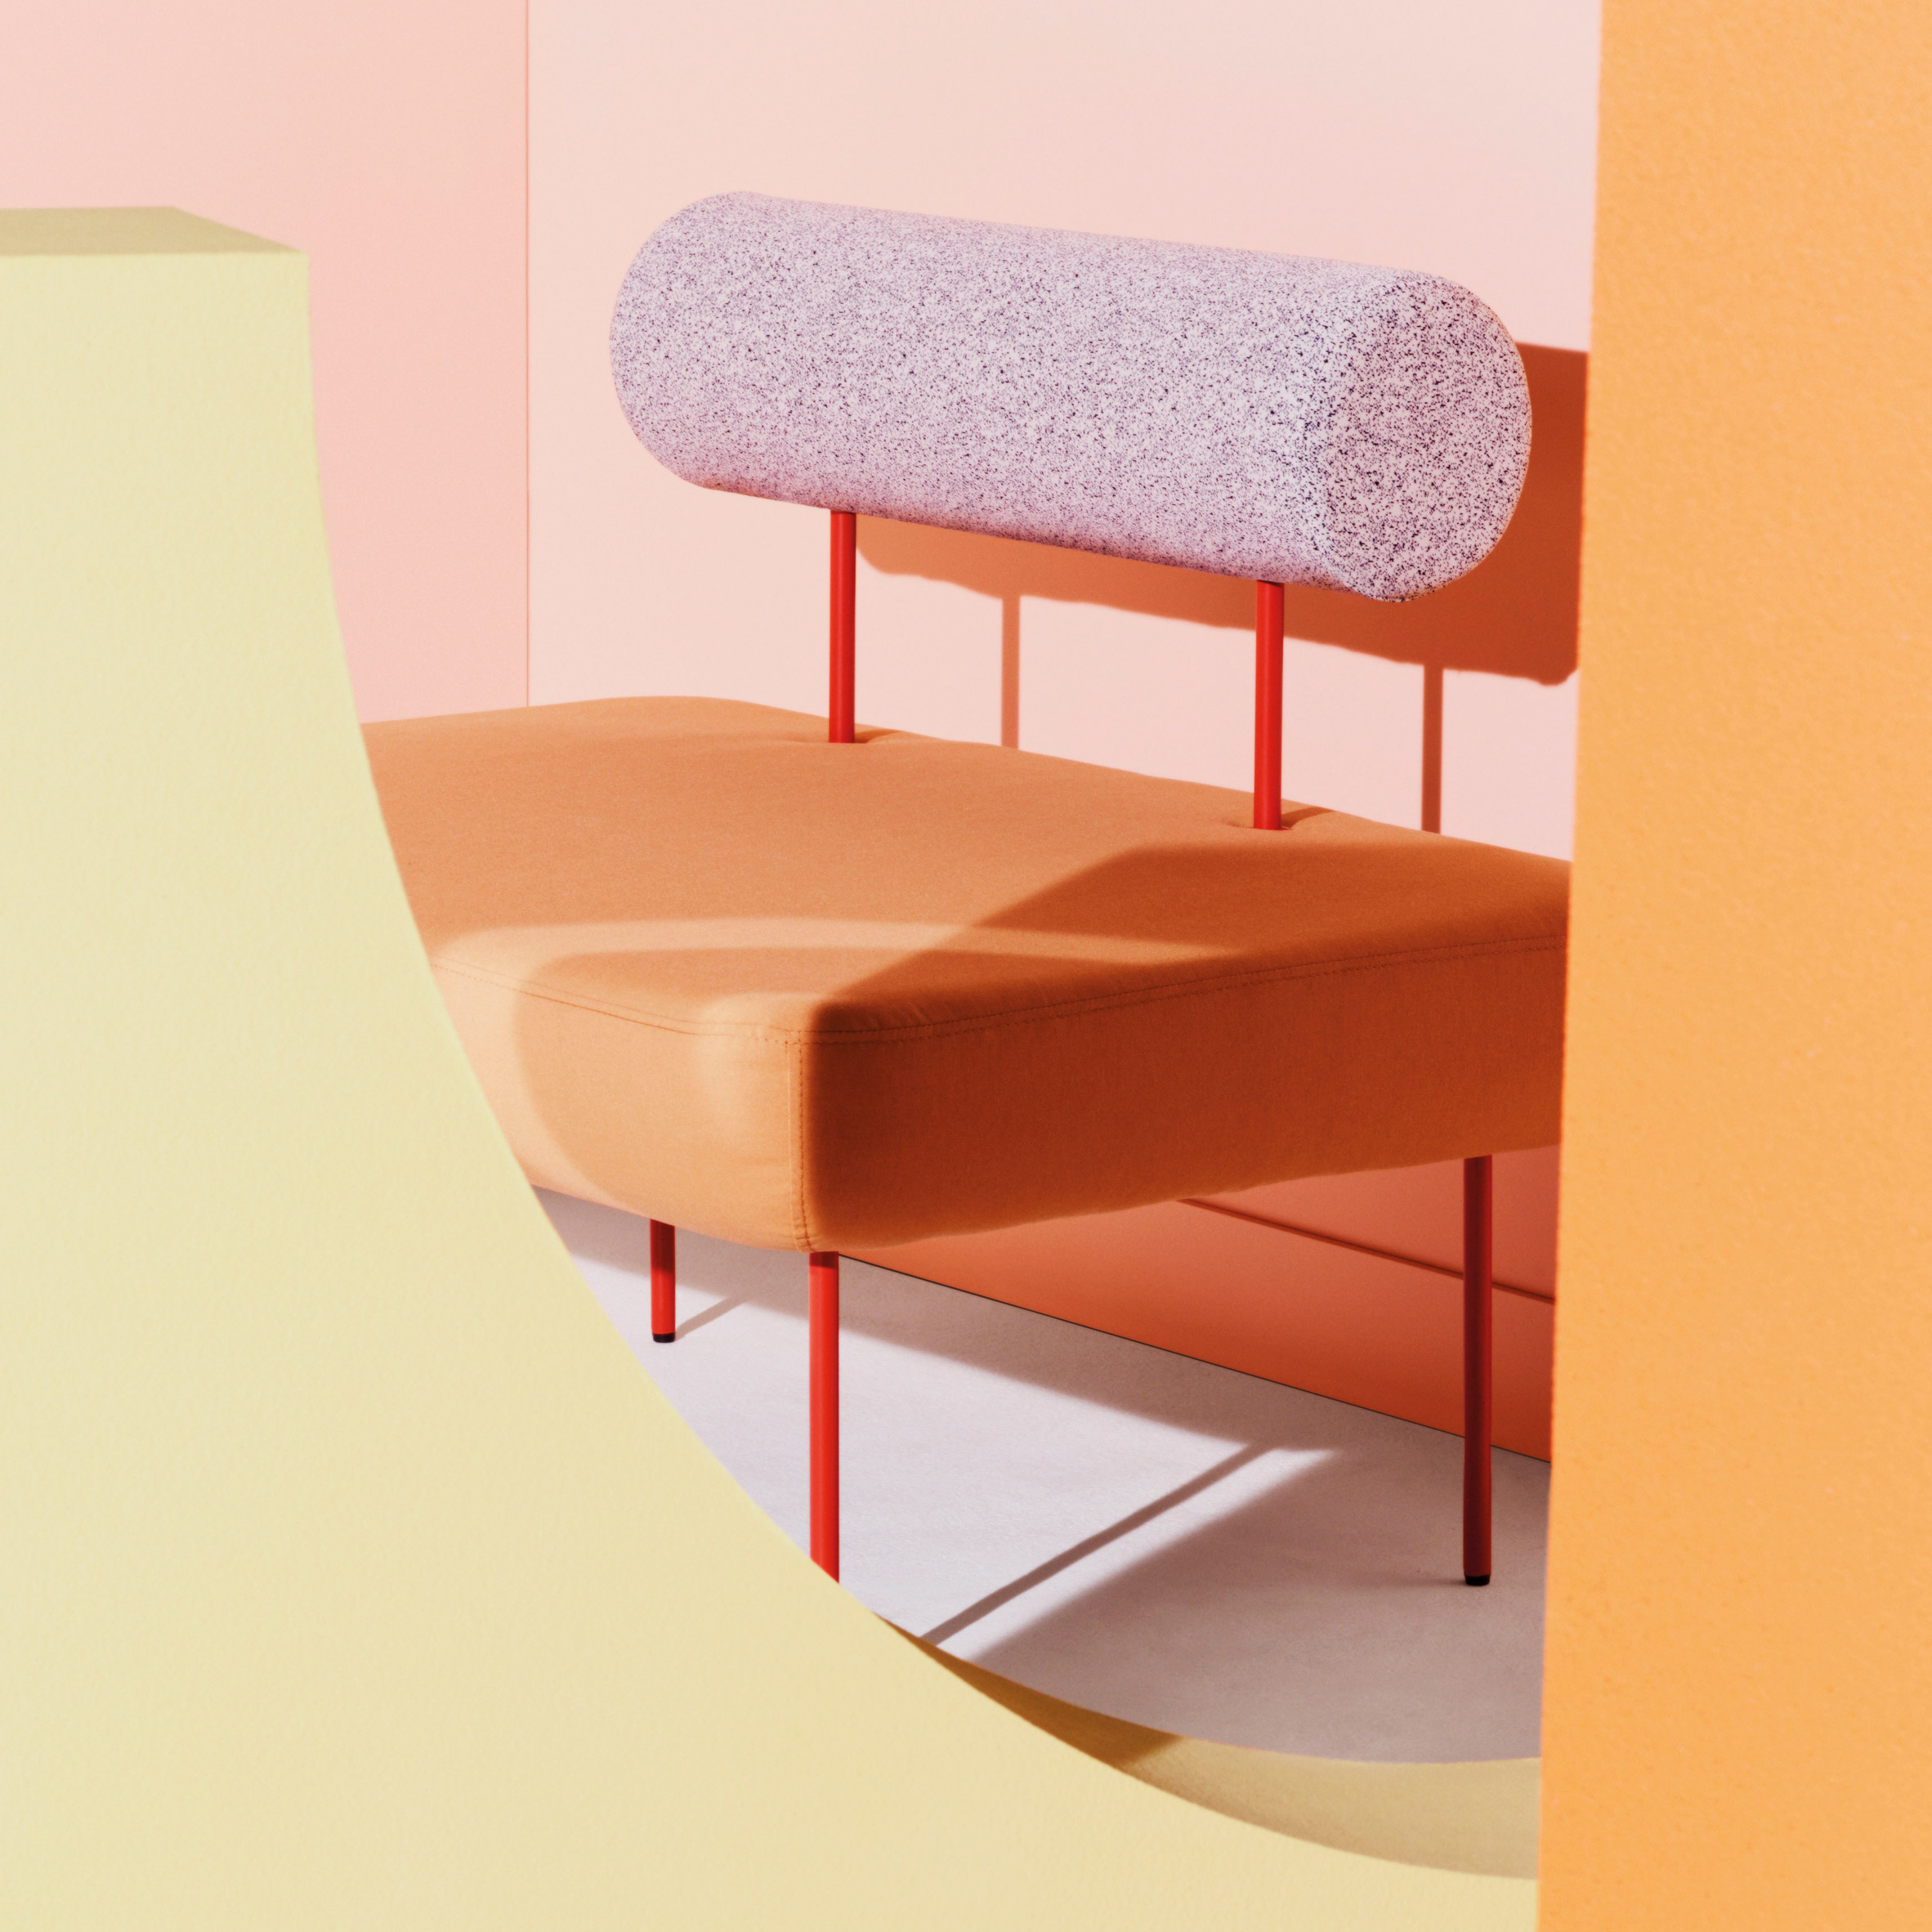 Dezeen\'s pick of the best French furniture brands at Maison&Objet